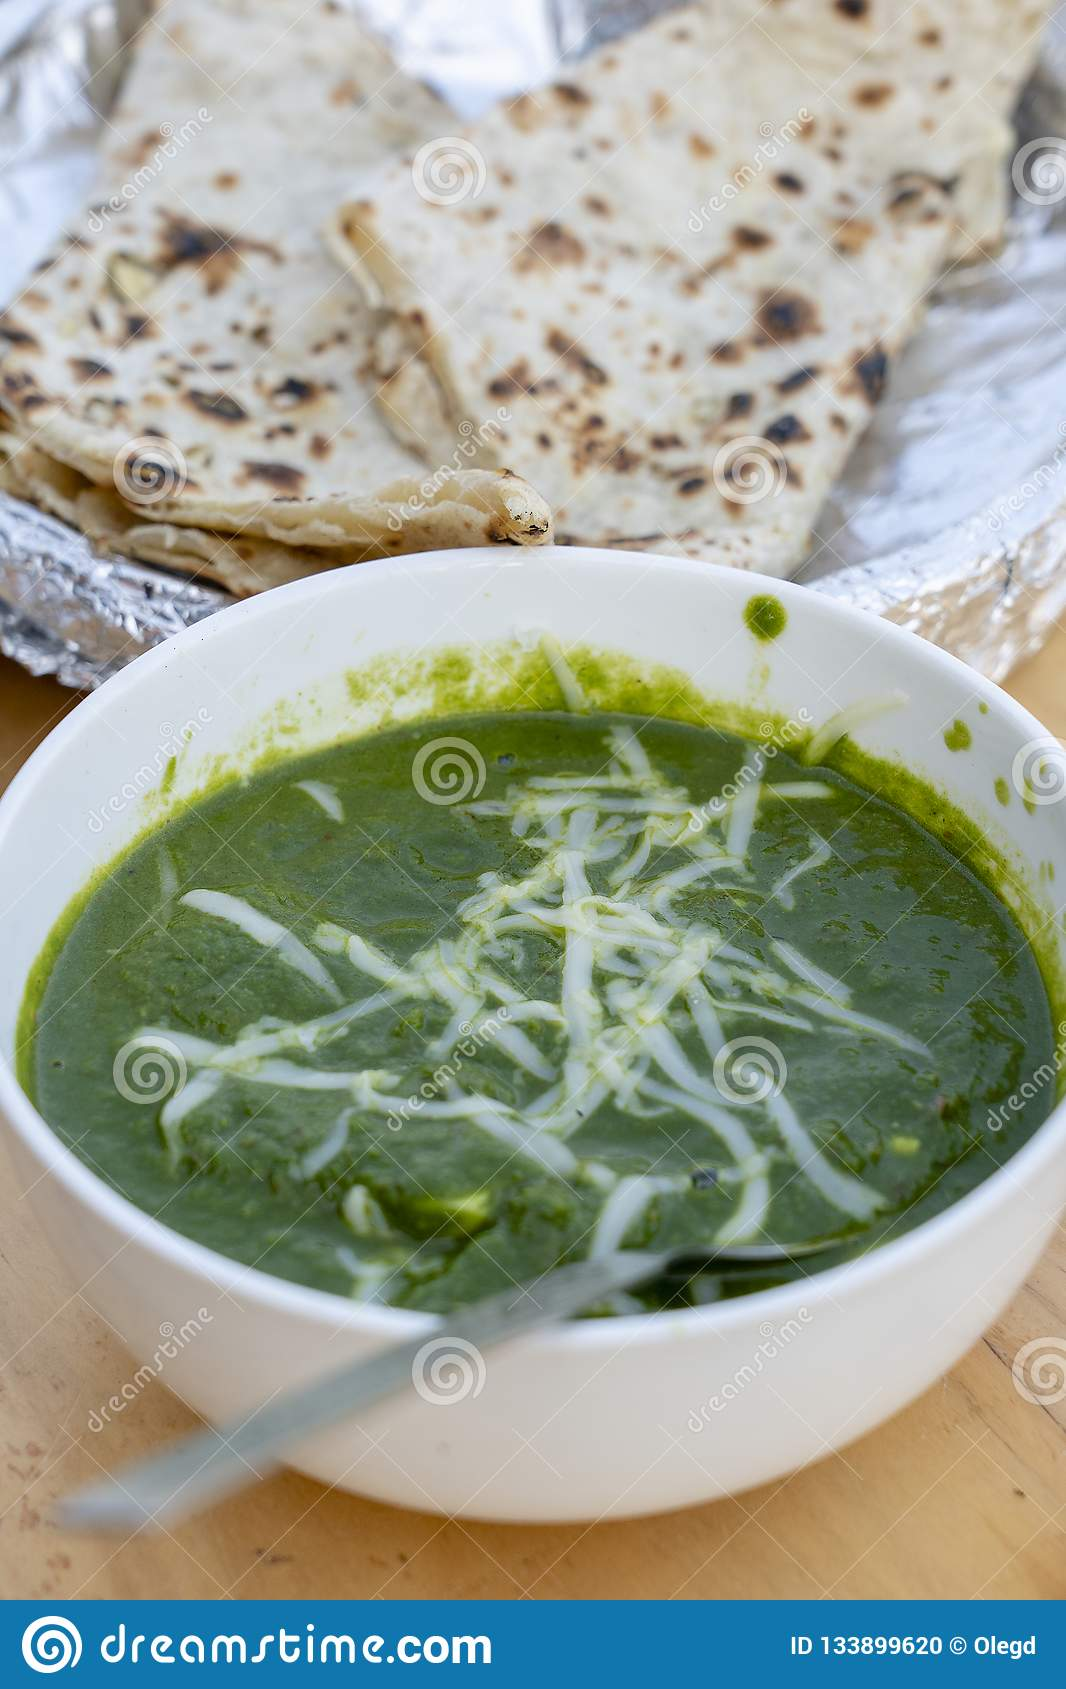 Palak Paneer Or Spinach And Cottage Cheese Curry Is A Healthy Main